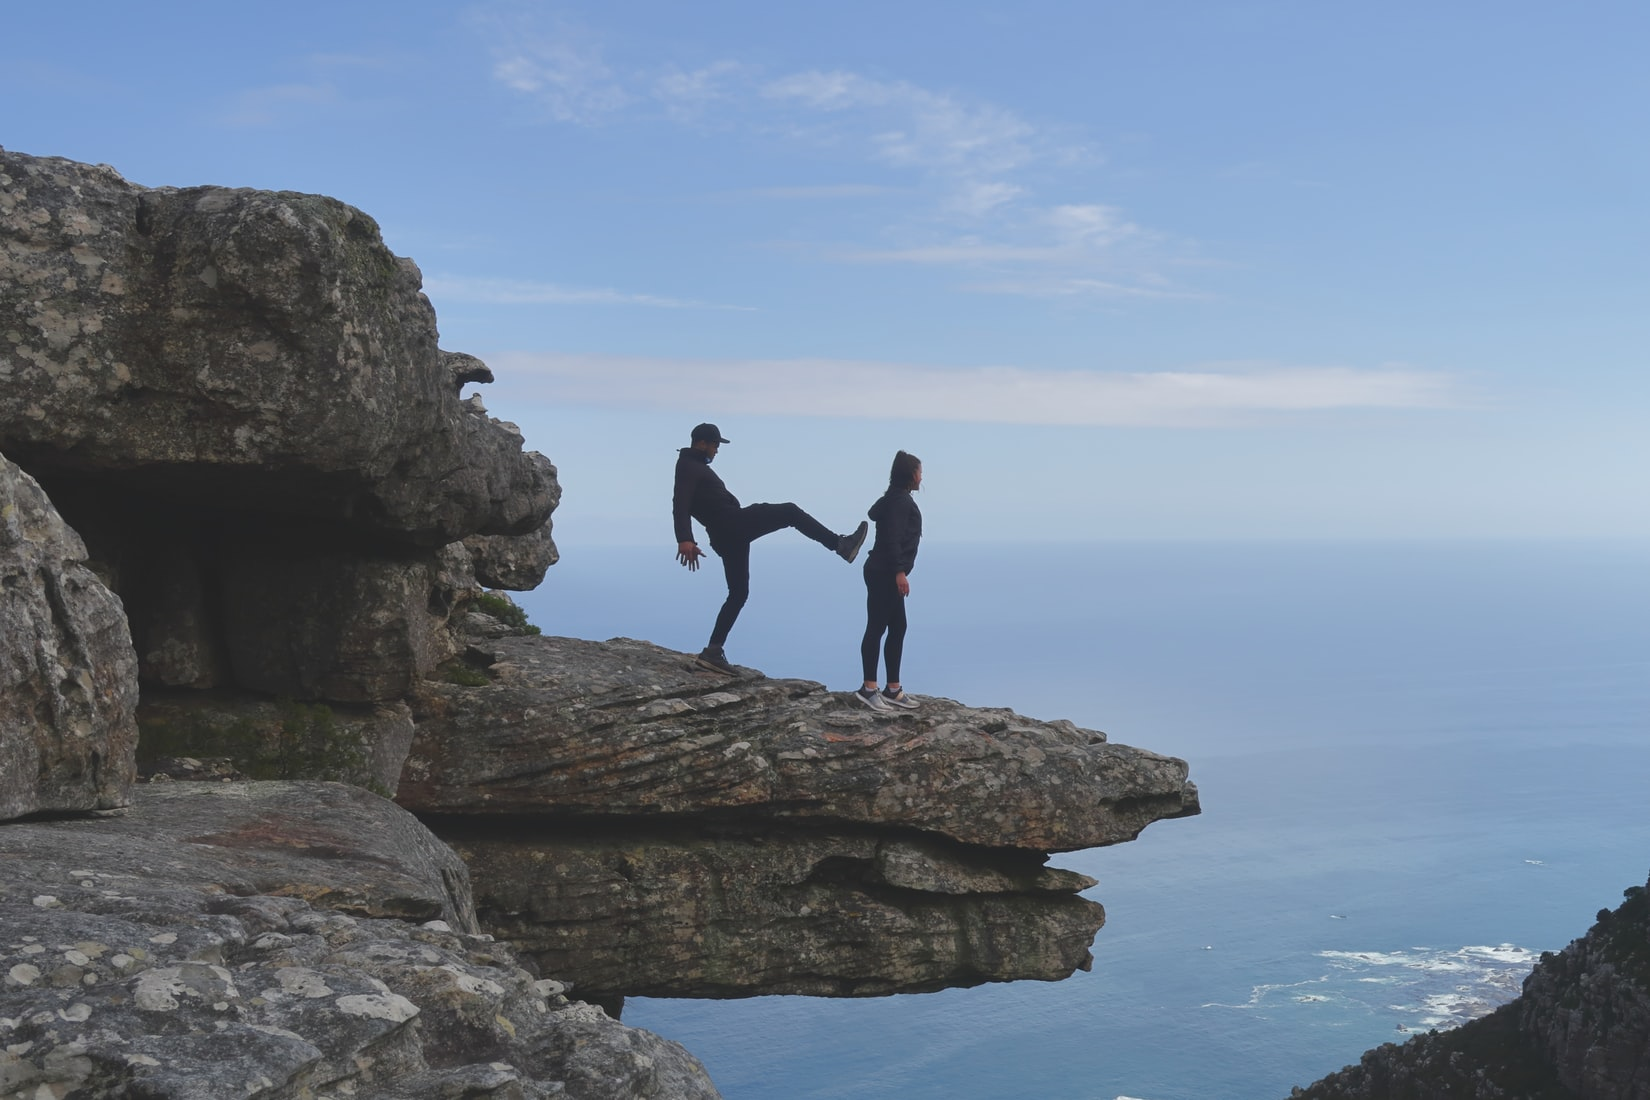 Man about to kick woman standing on cliff near ocean